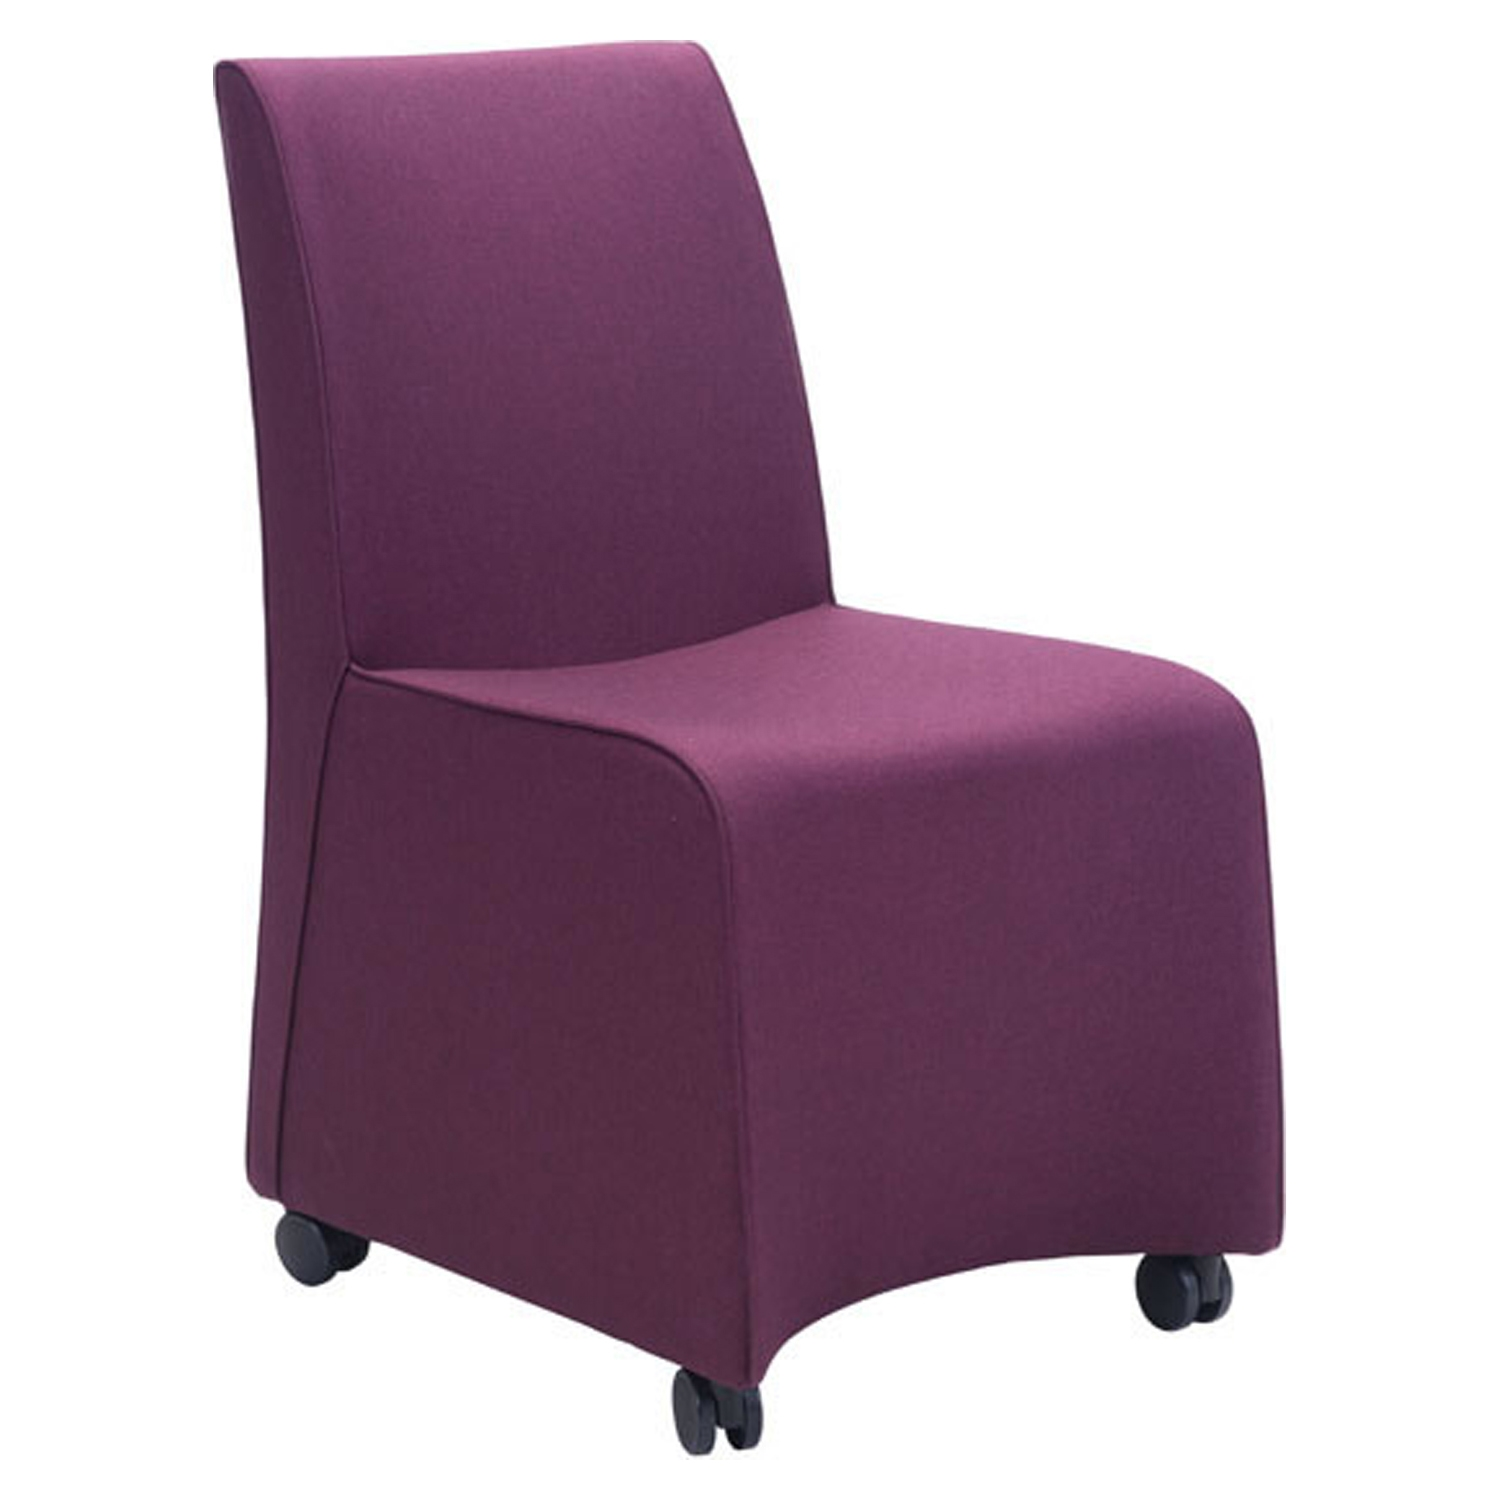 Whittle Dining Chair - Purple